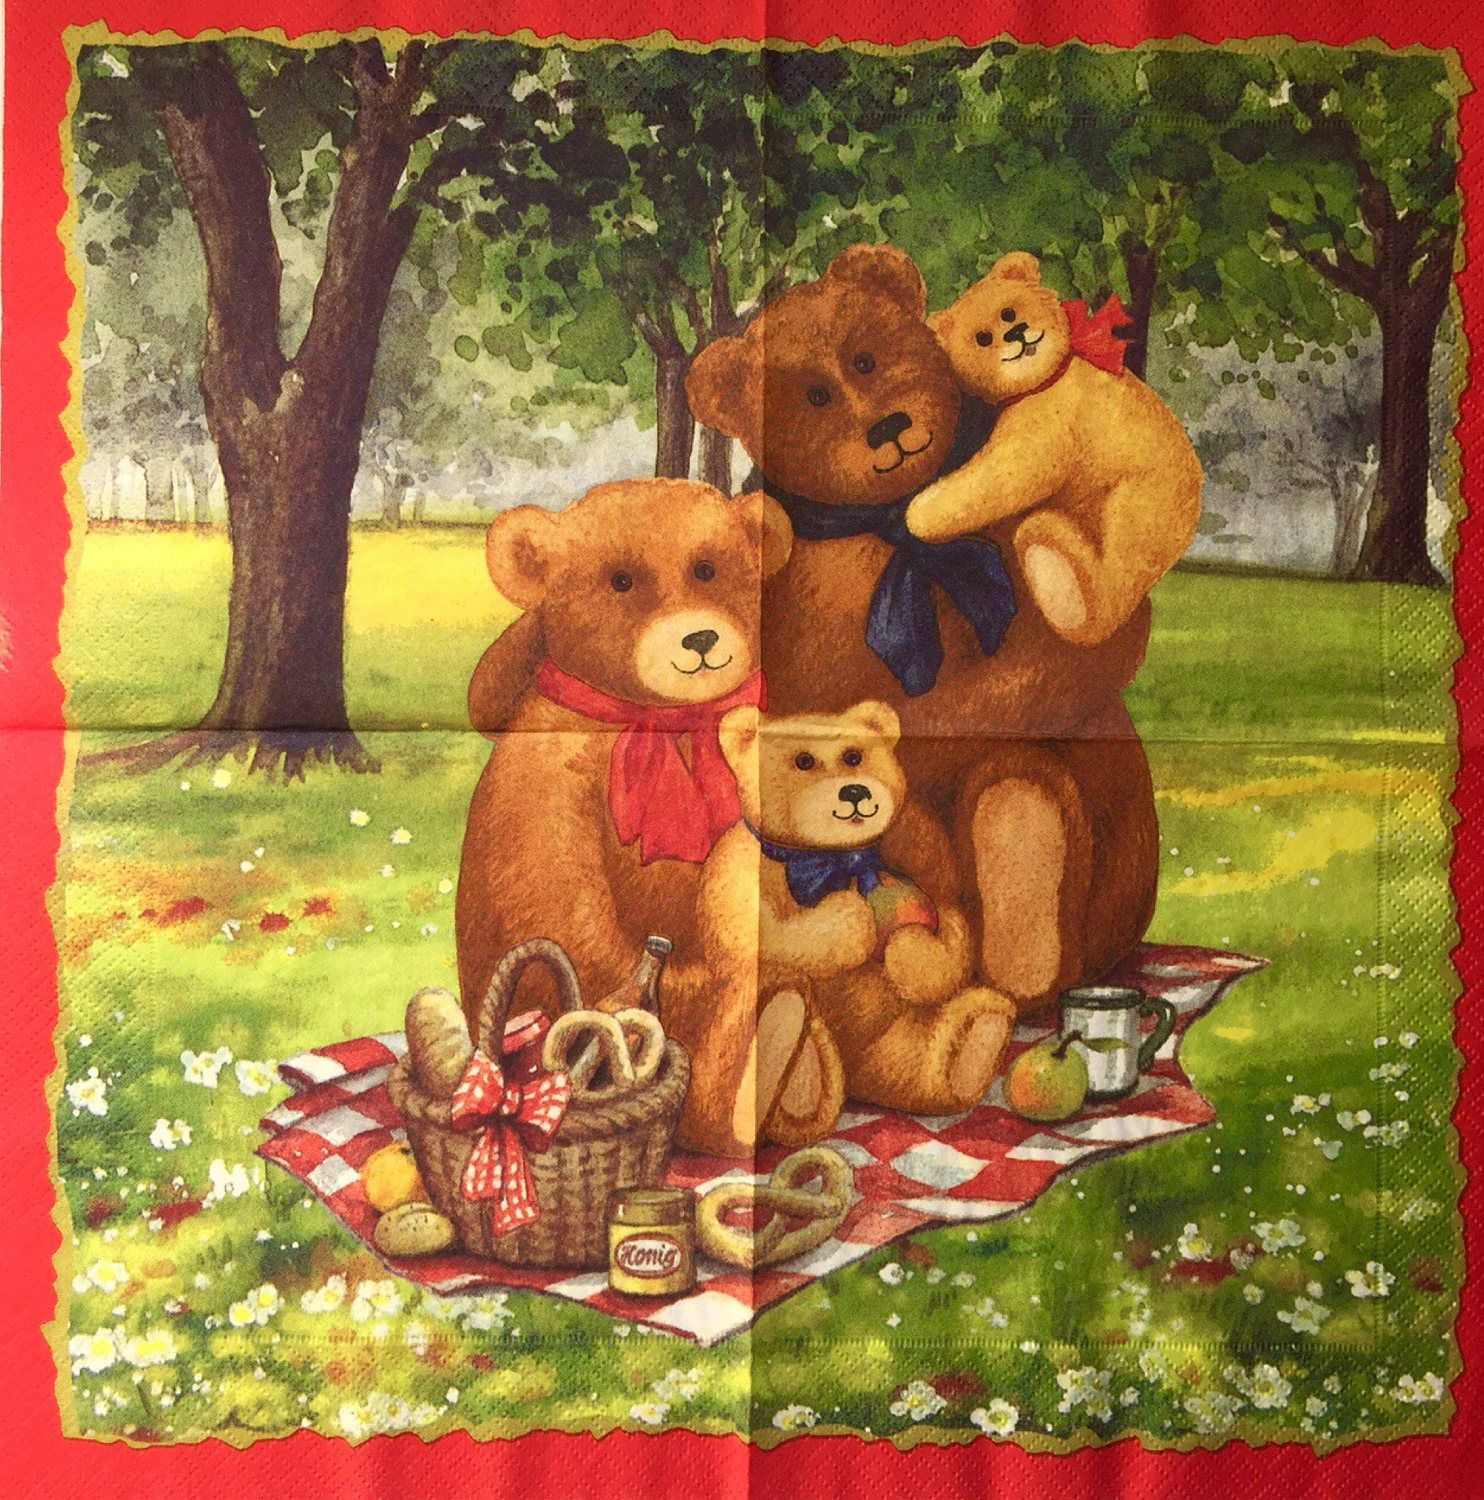 Rare single(one whole picture napkin) Teddy familie&Picnic for collectie/decoupage, decoupage under glass, scrapbooking and other art door Dalilasdecoupage op Etsy